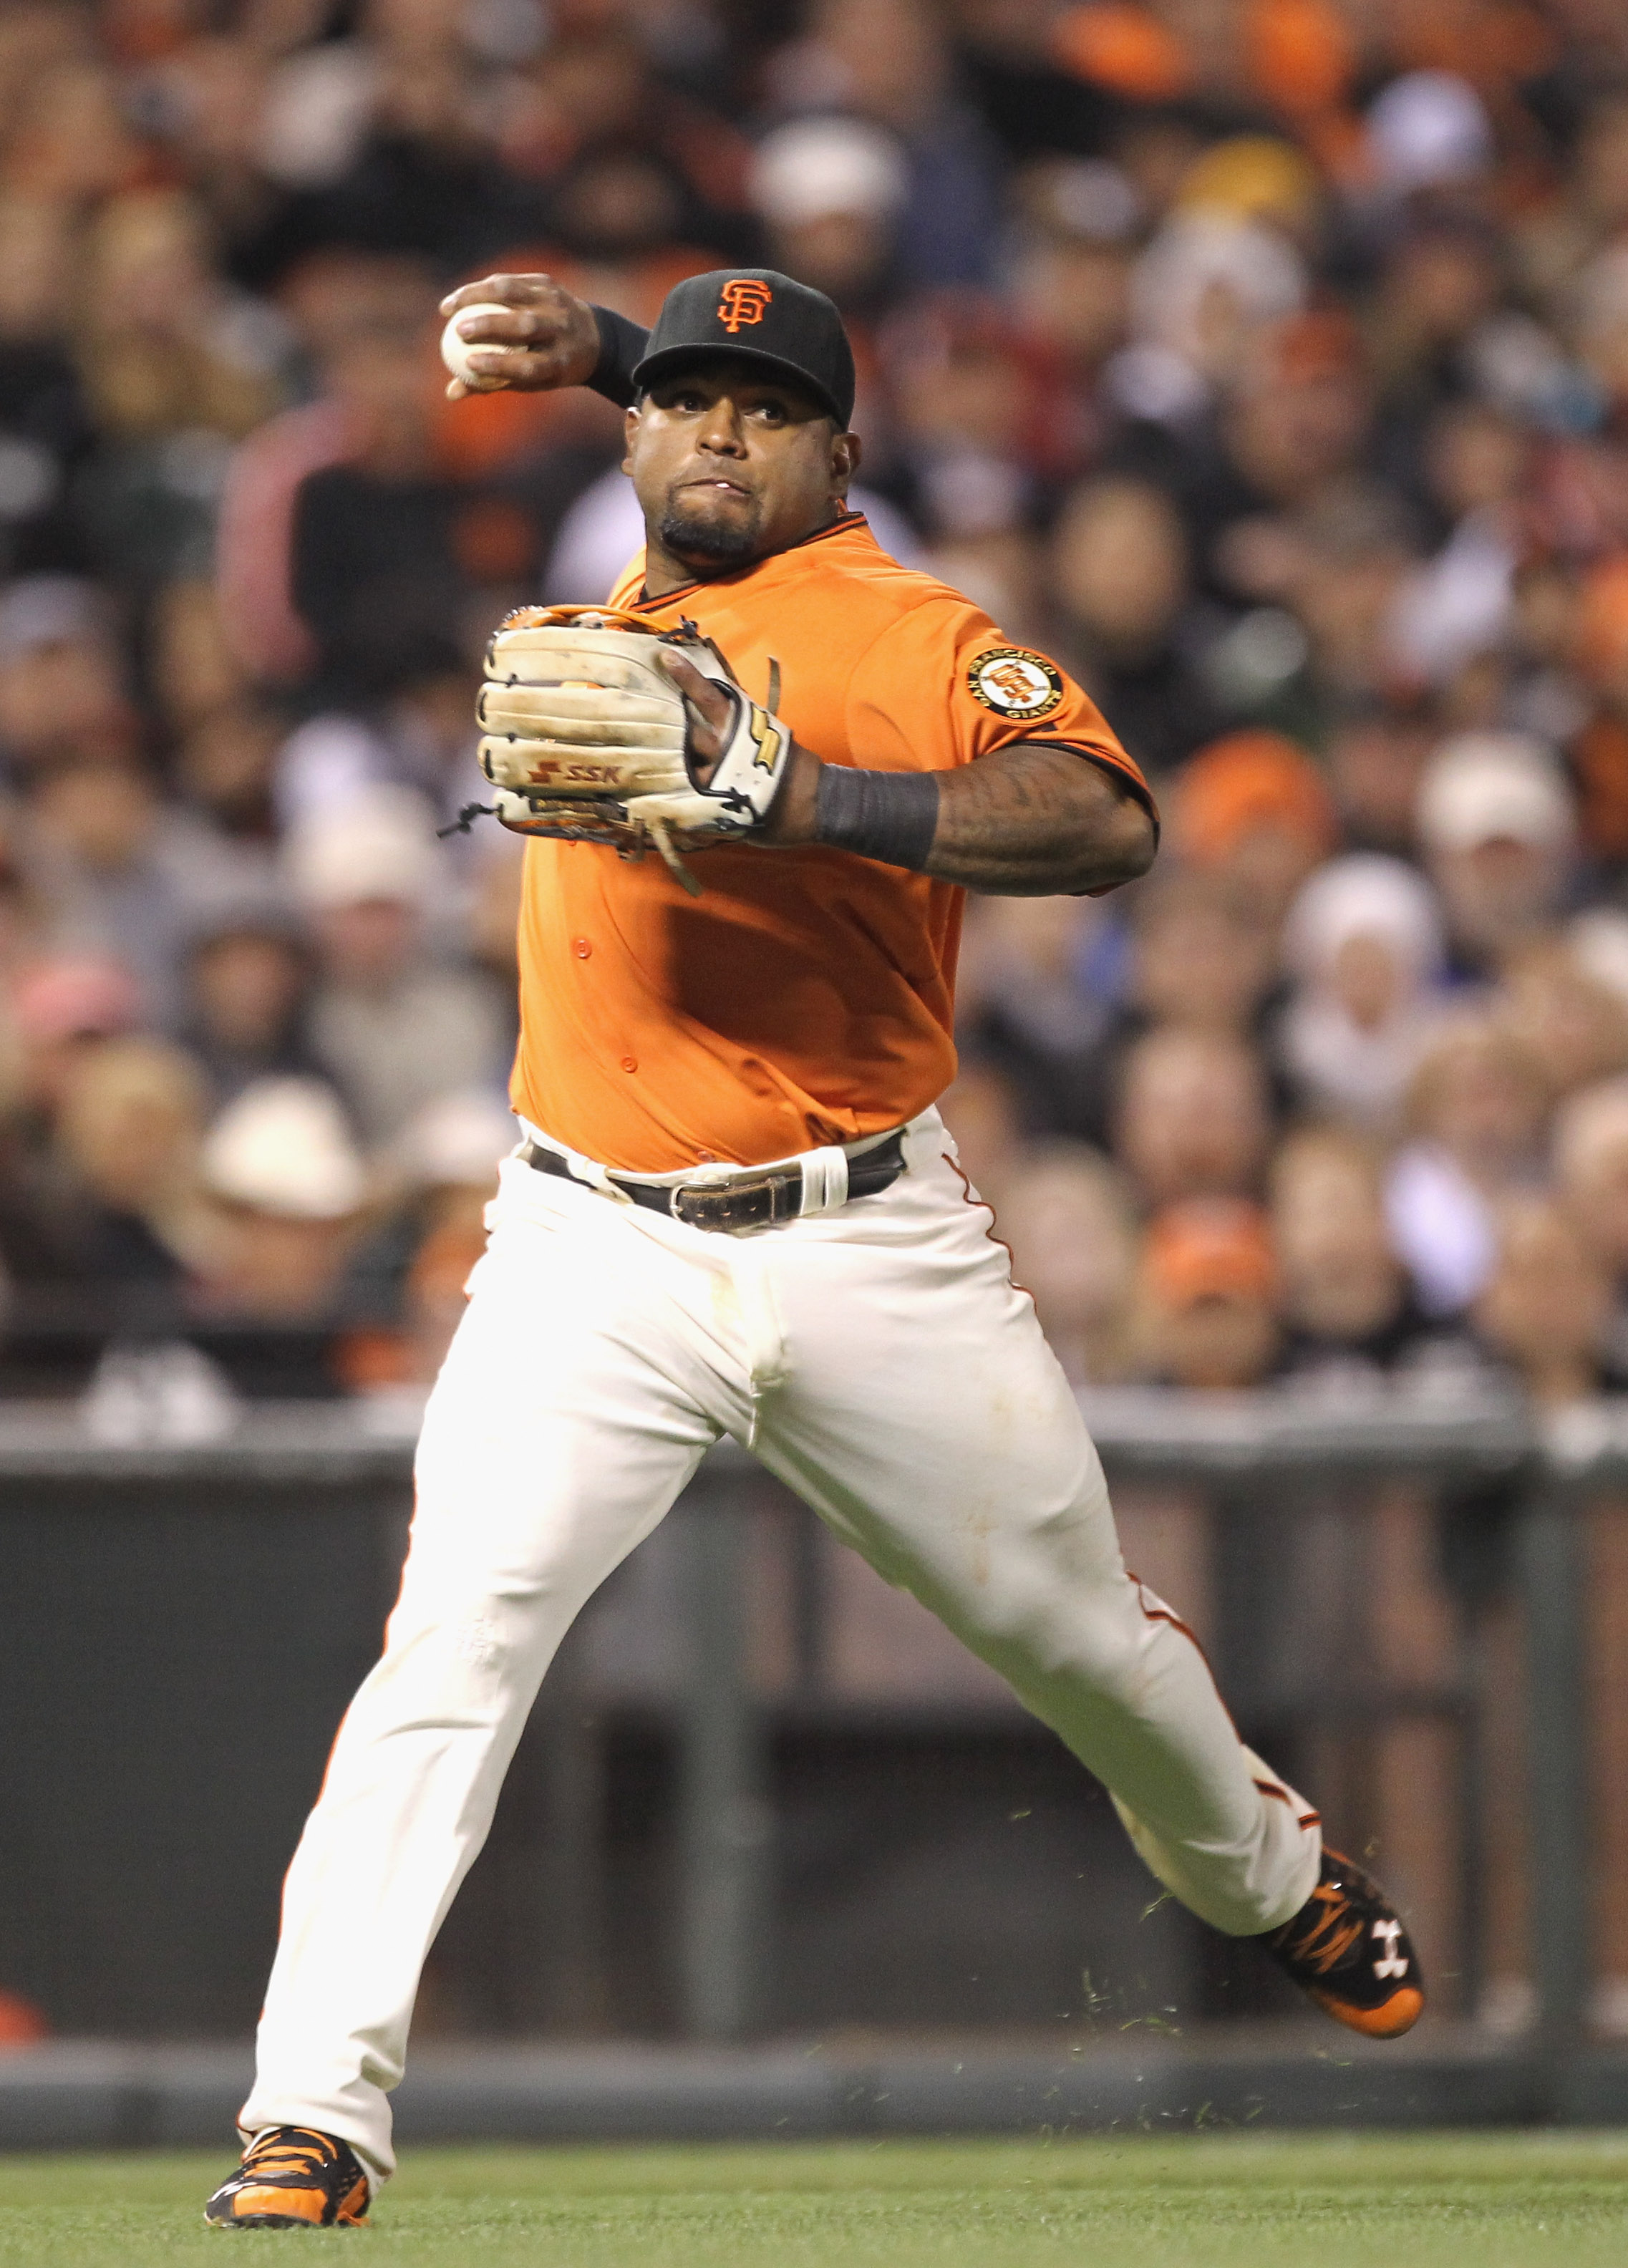 SAN FRANCISCO, CA - APRIL 22: Pablo Sandoval #48 of the San Francisco Giants in action against the Atlanta Braves at AT&T Park on April 22, 2011 in San Francisco, California.  (Photo by Ezra Shaw/Getty Images)